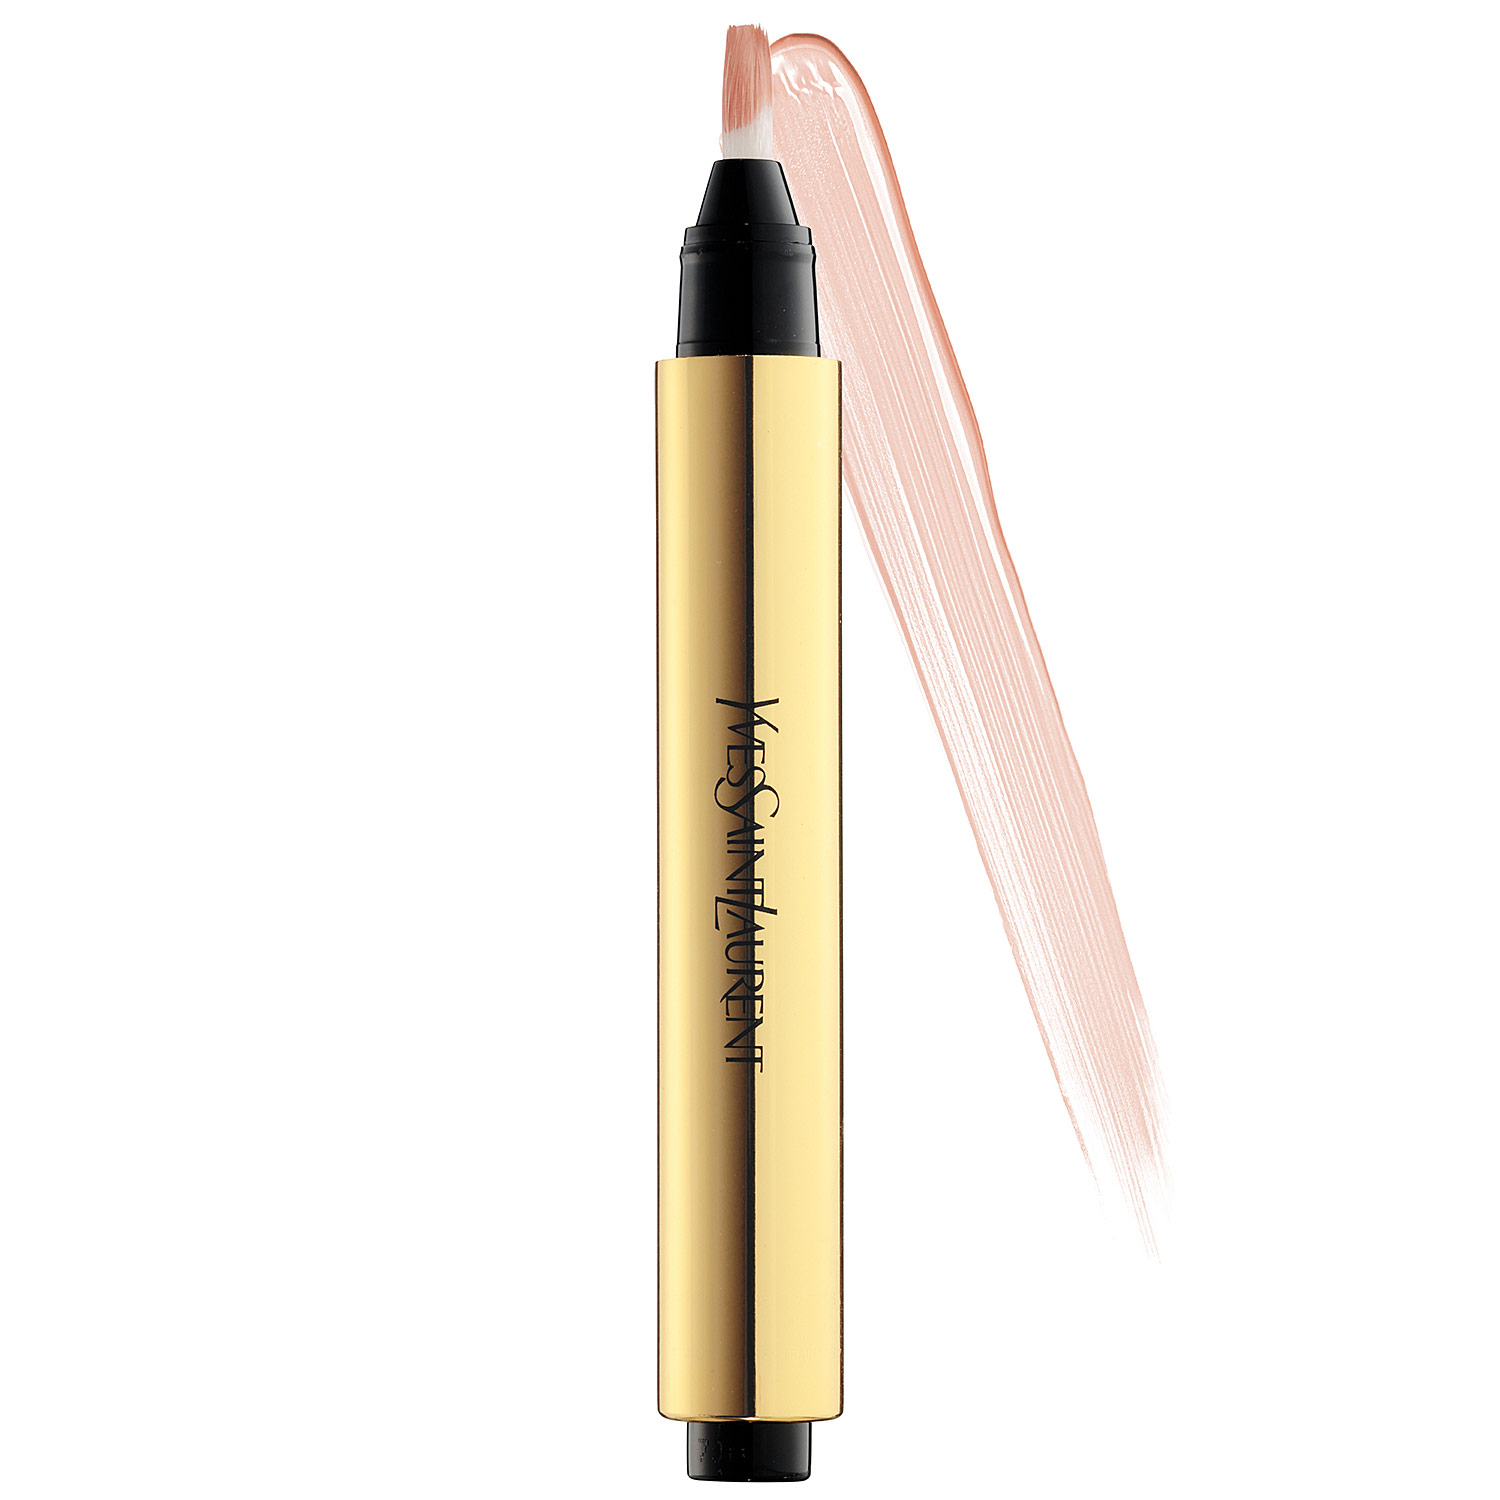 Yves Saint Laurent Touche Eclat 2,5ml - N°05 Luminous Honey